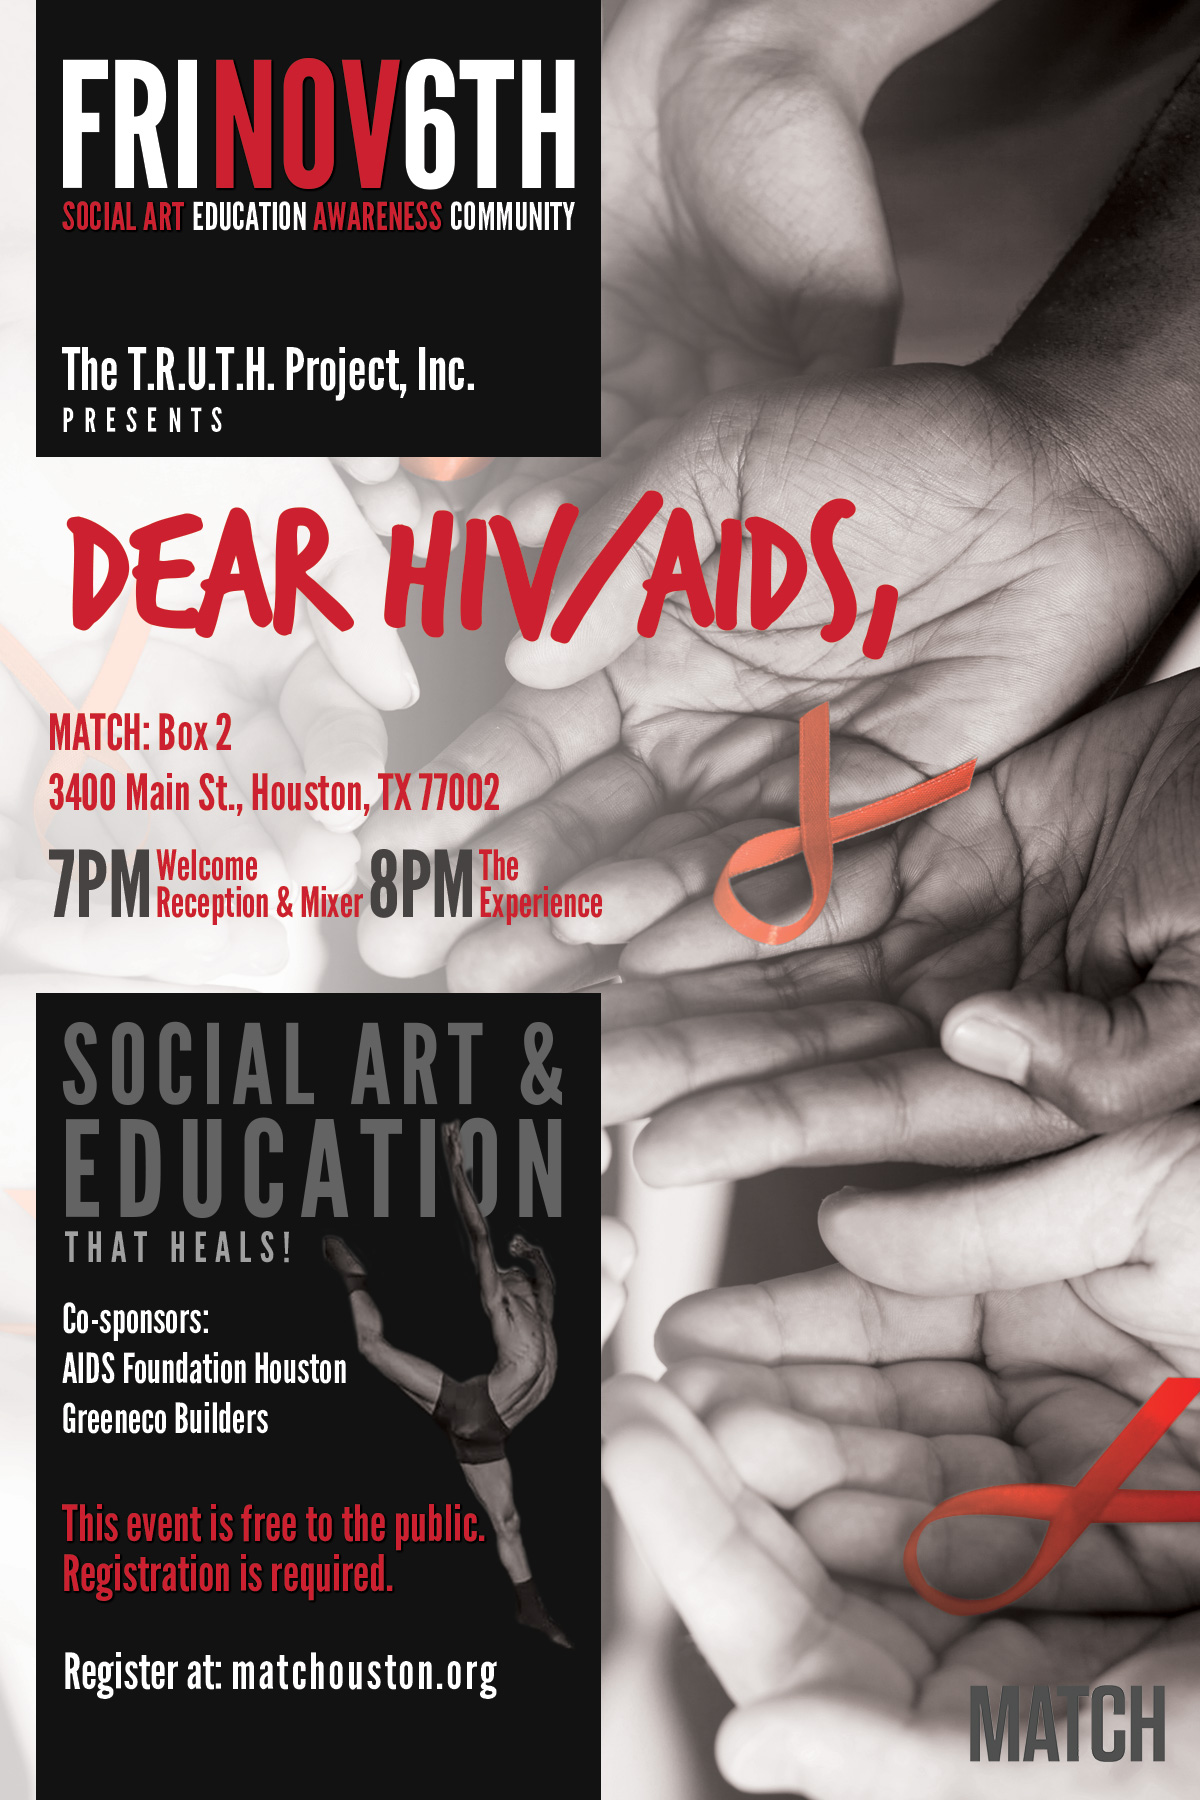 TRUTH - Dear HIV/AIDS